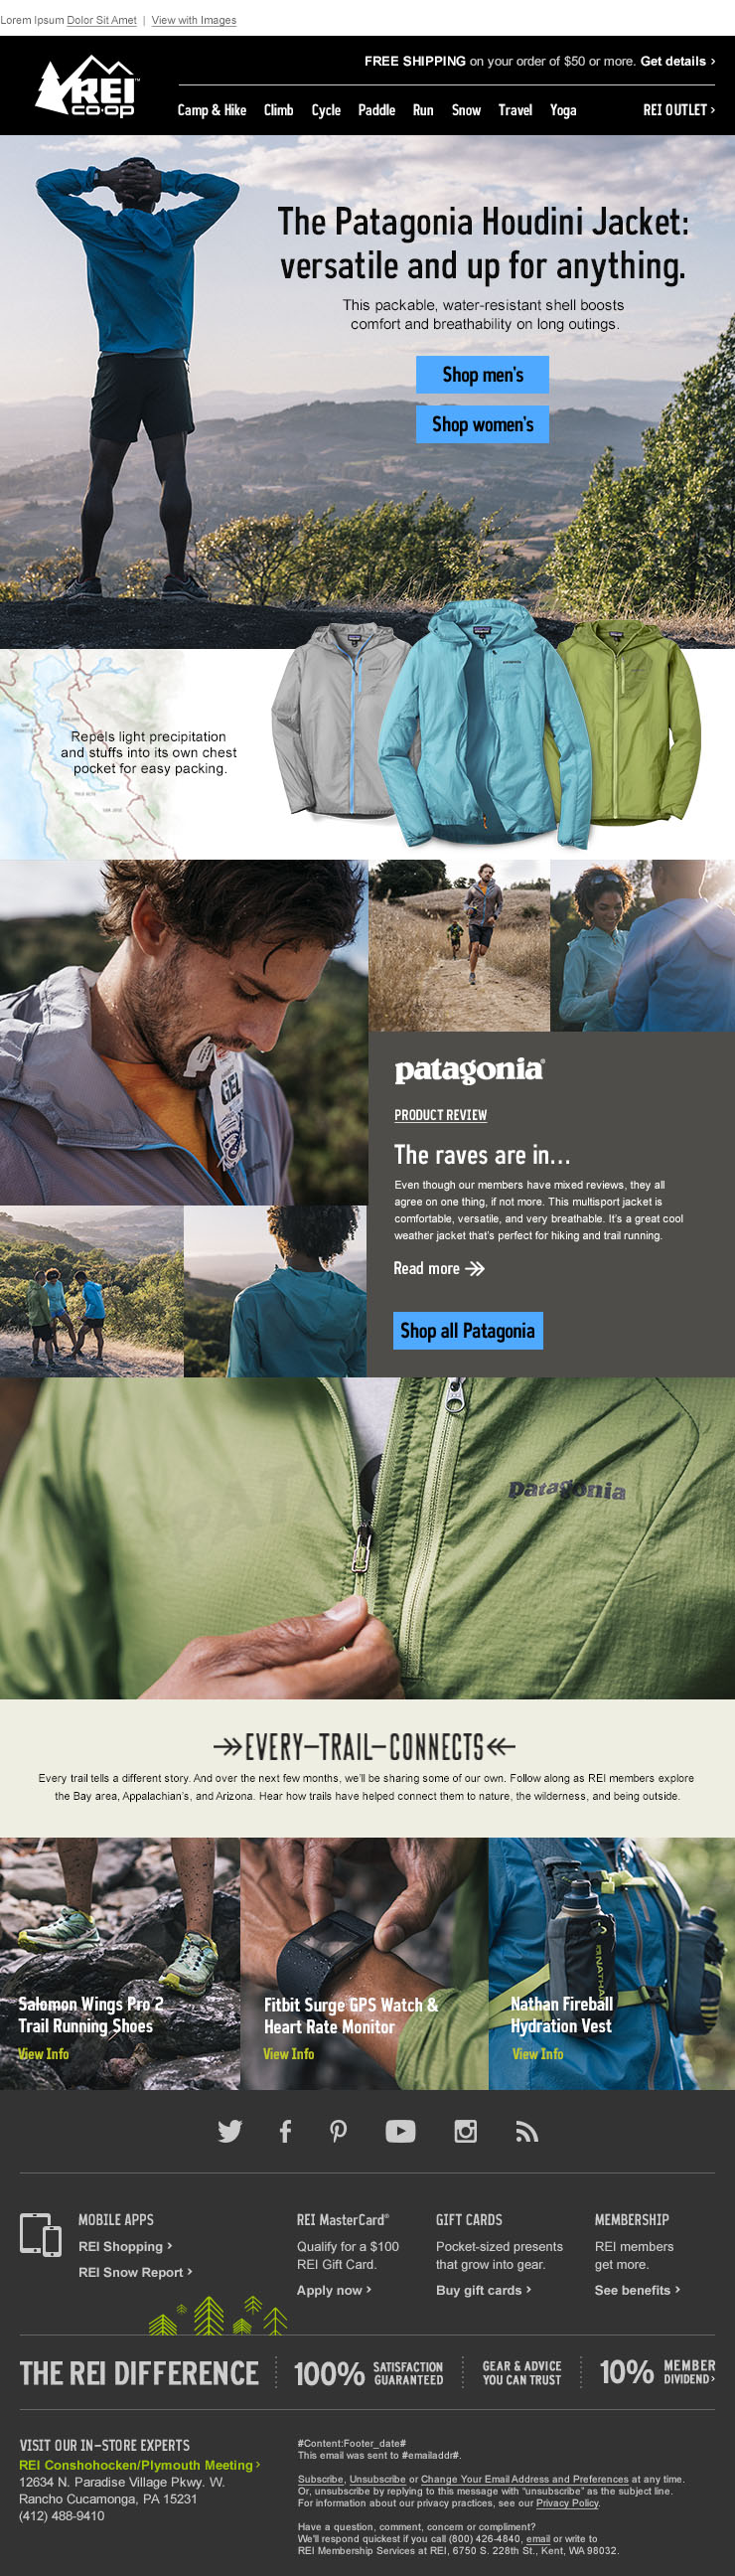 rei_trails2_patagonia_email_products_r2